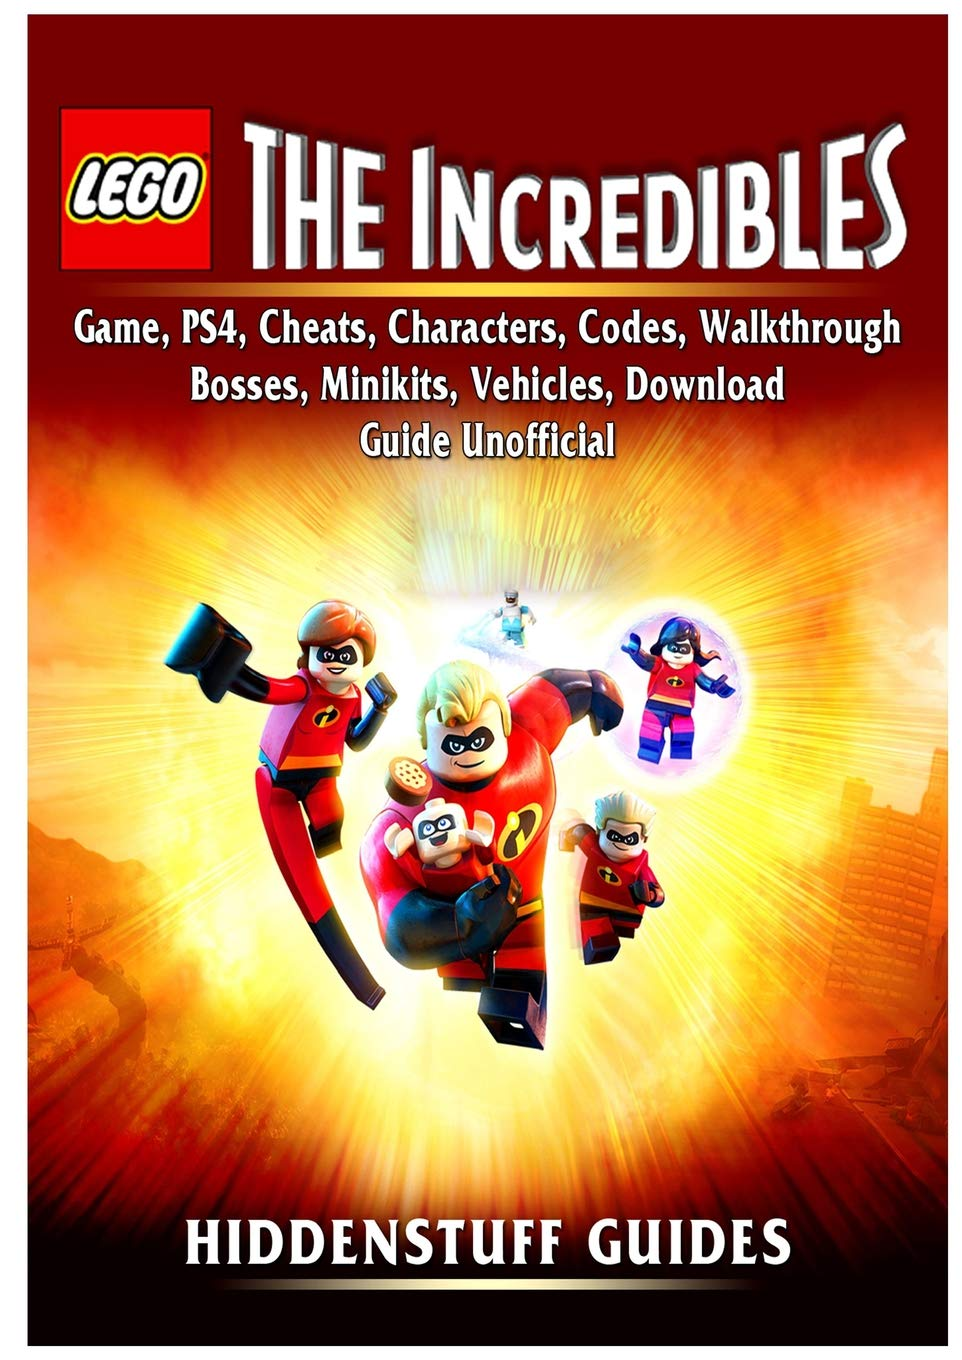 Lego The Incredibles Game, PS4, Cheats, Characters, Codes